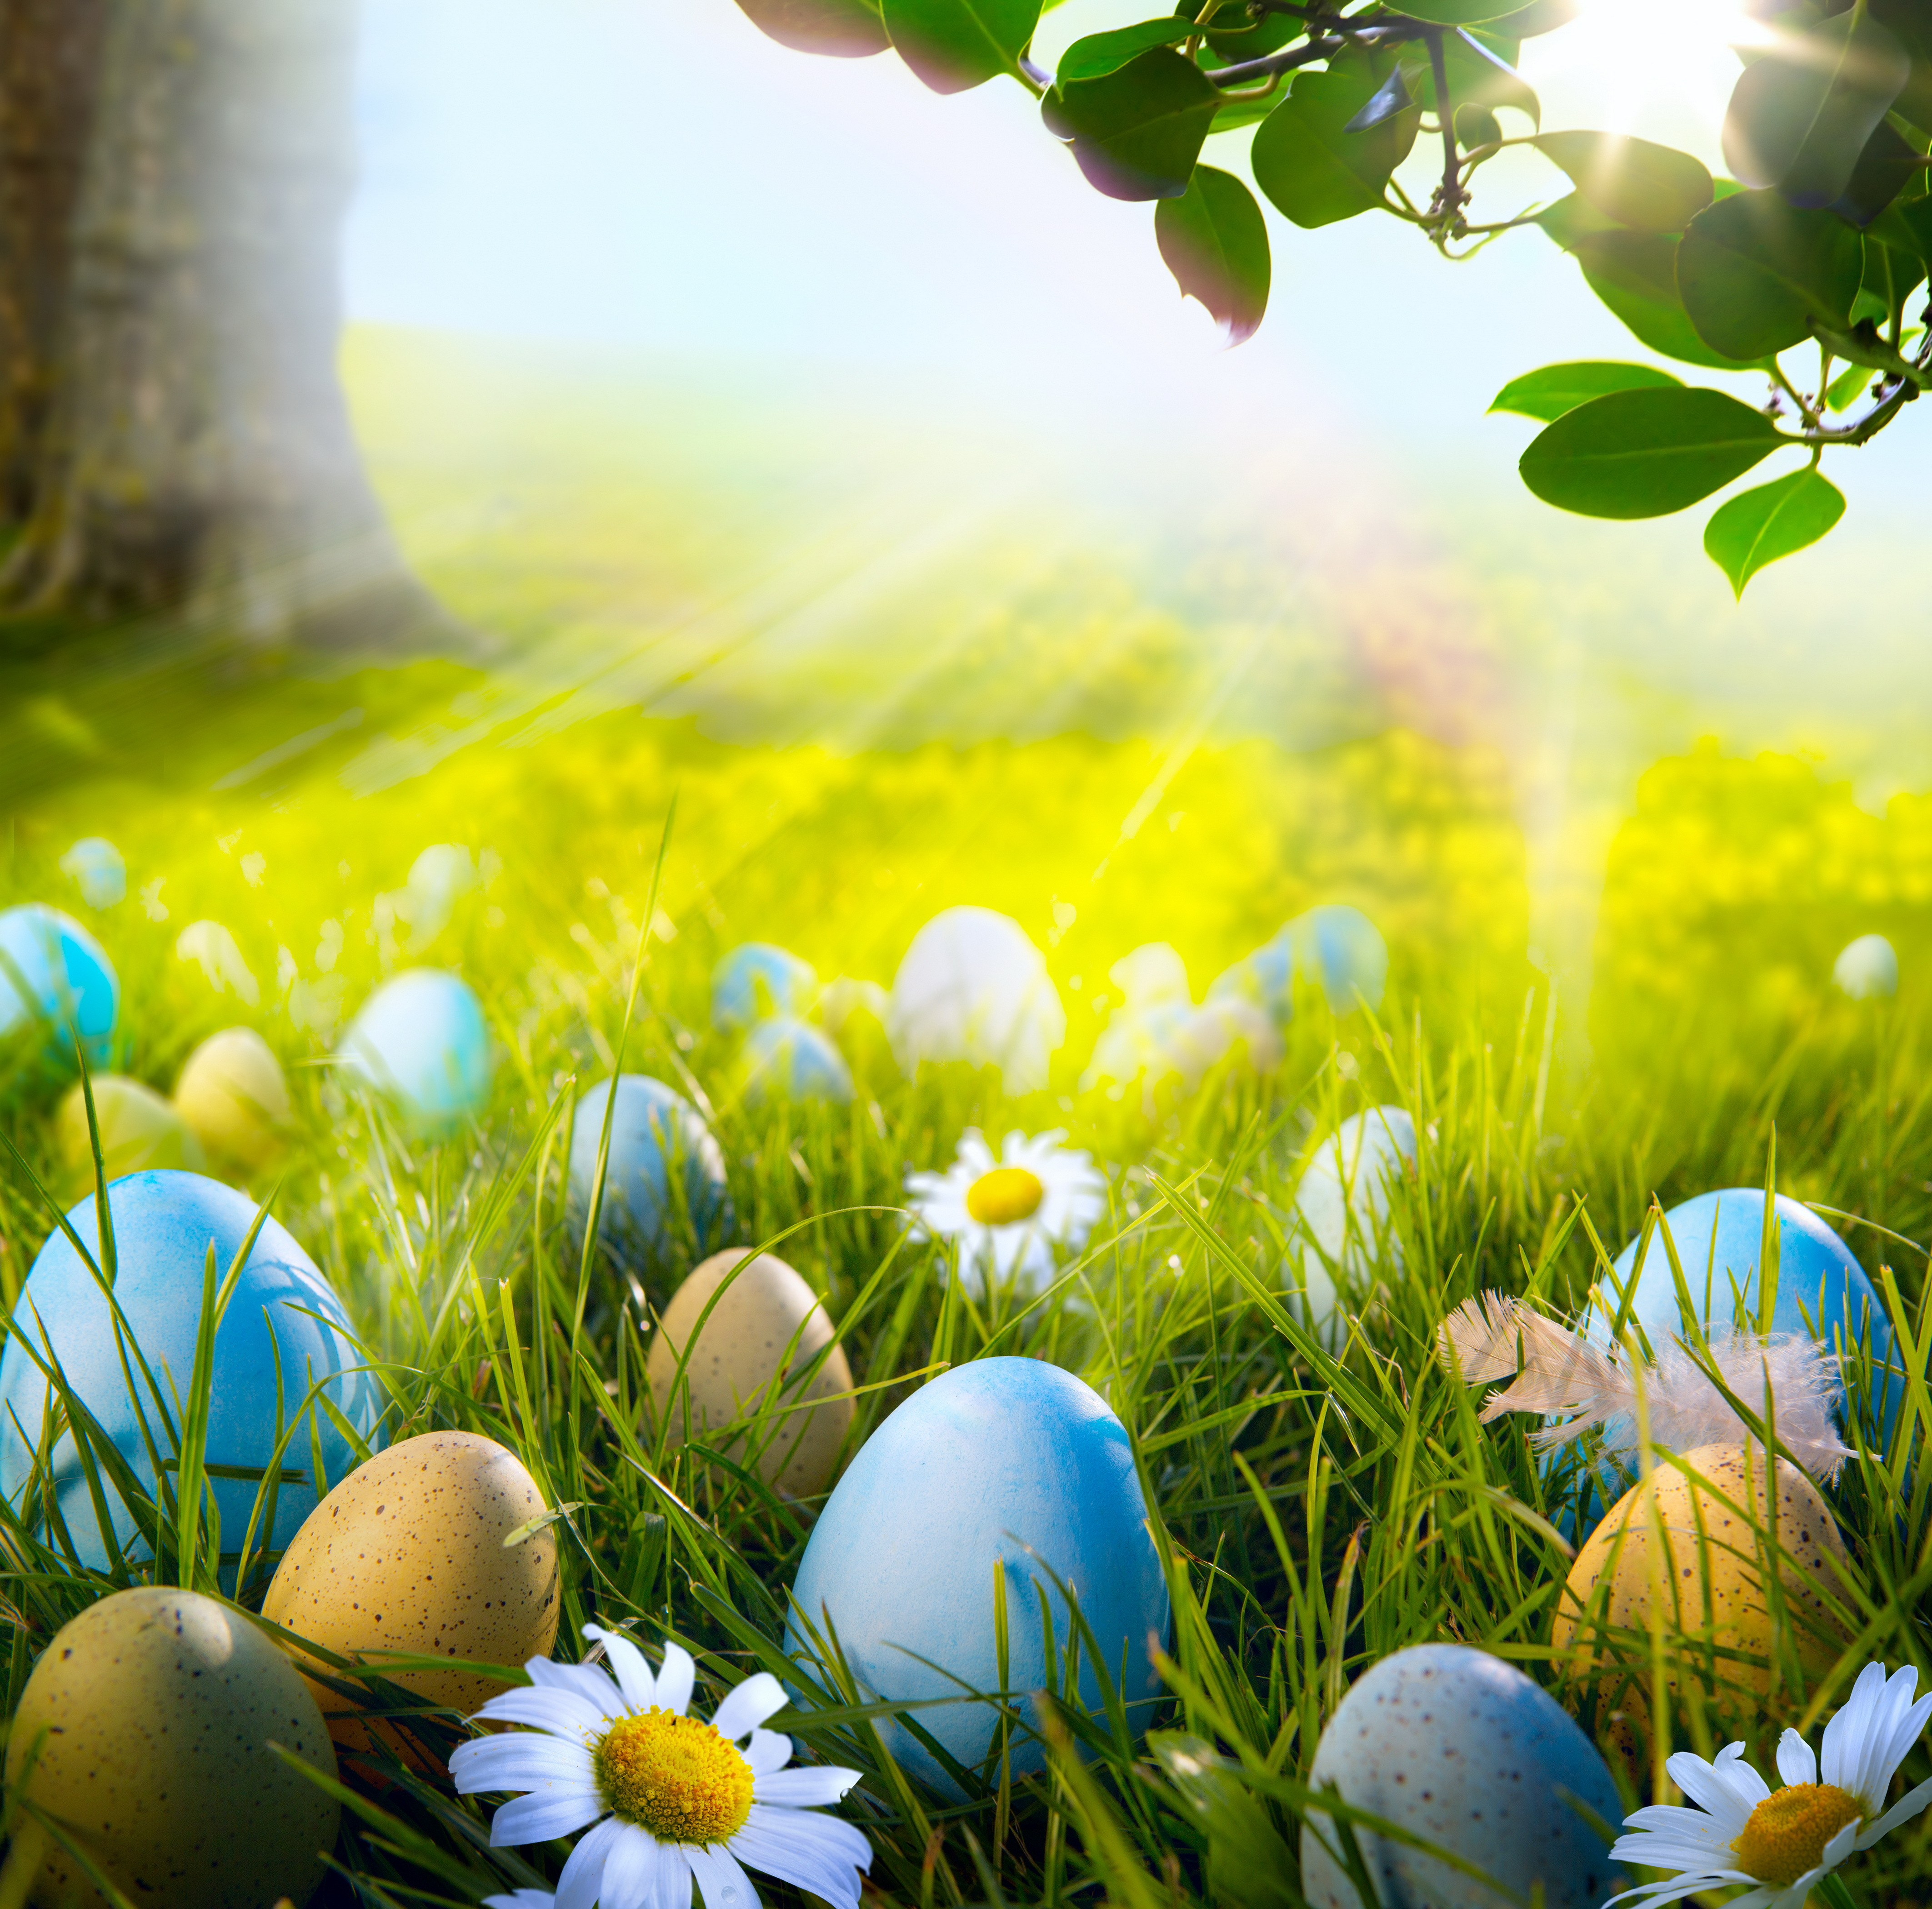 Cool Spring Wallpapers: [49+] Free Easter And Spring Wallpaper On WallpaperSafari